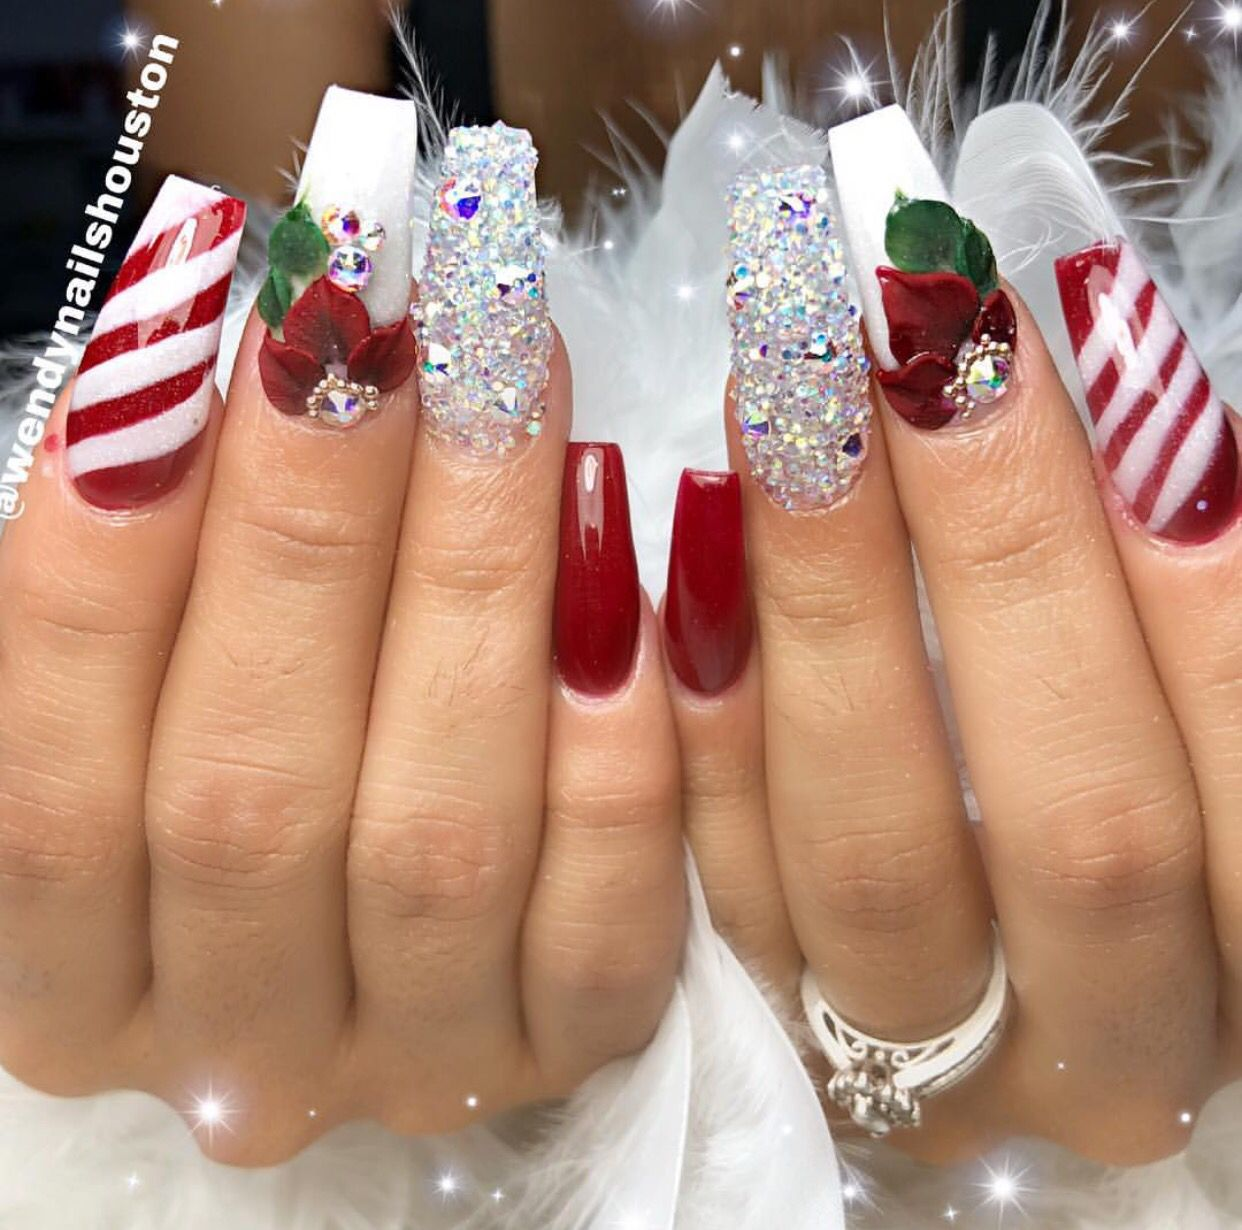 Pin by Brisza Herrera on Nails ✨ in 2020